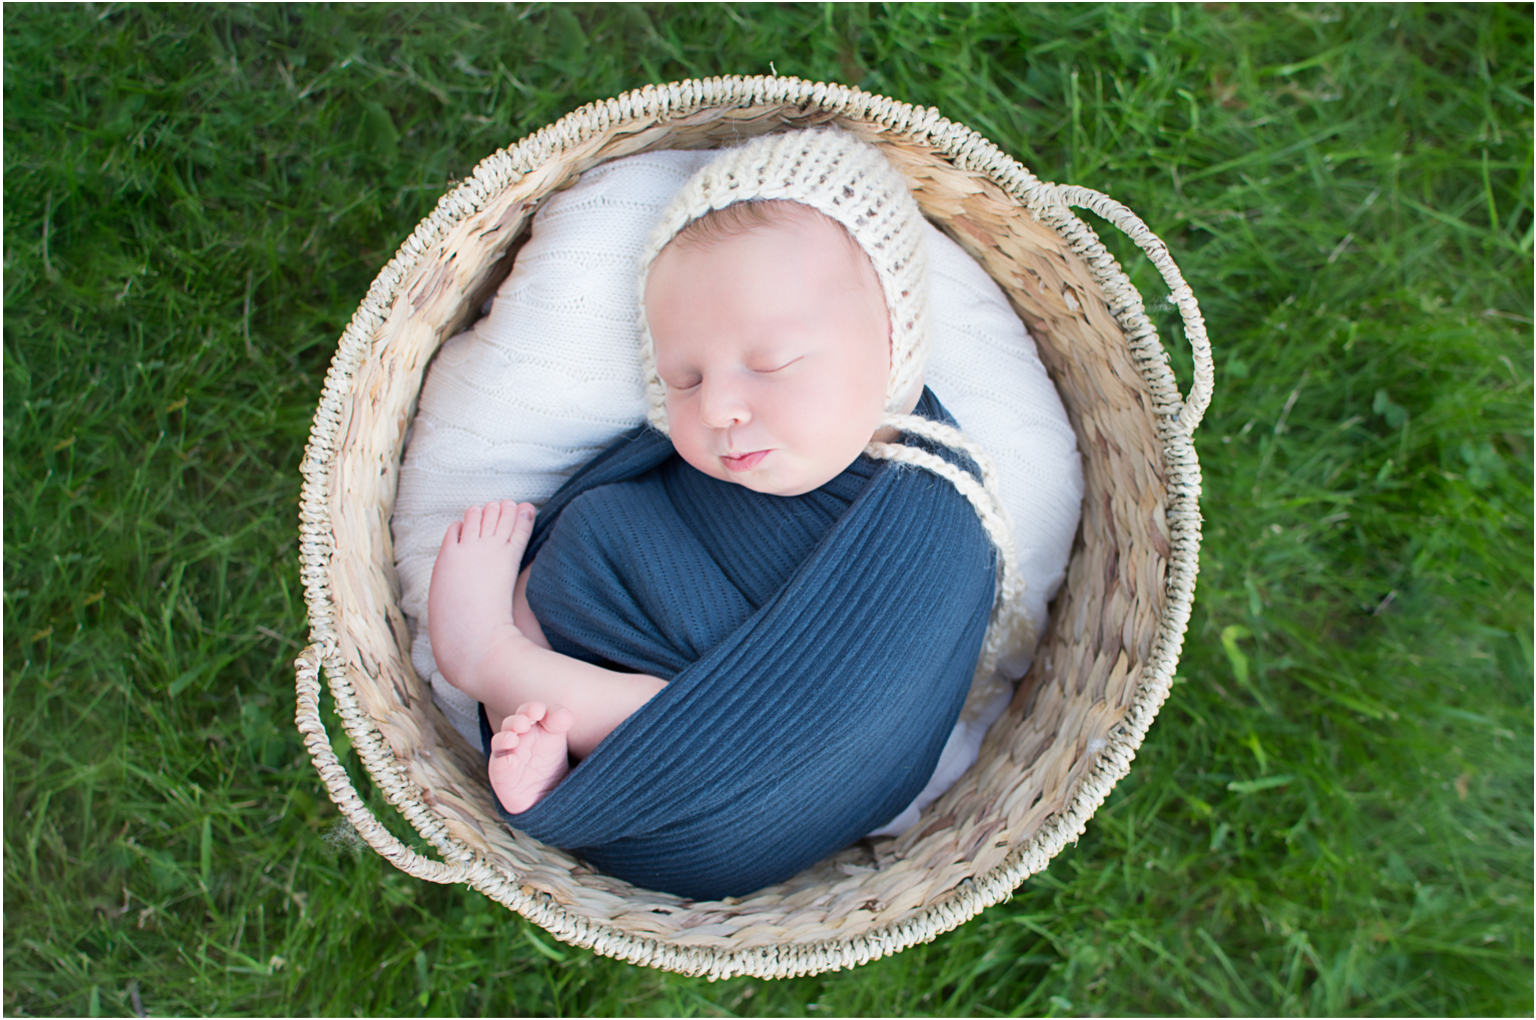 Callan Williamsport Newborn Photographer outside baby boy basket grass